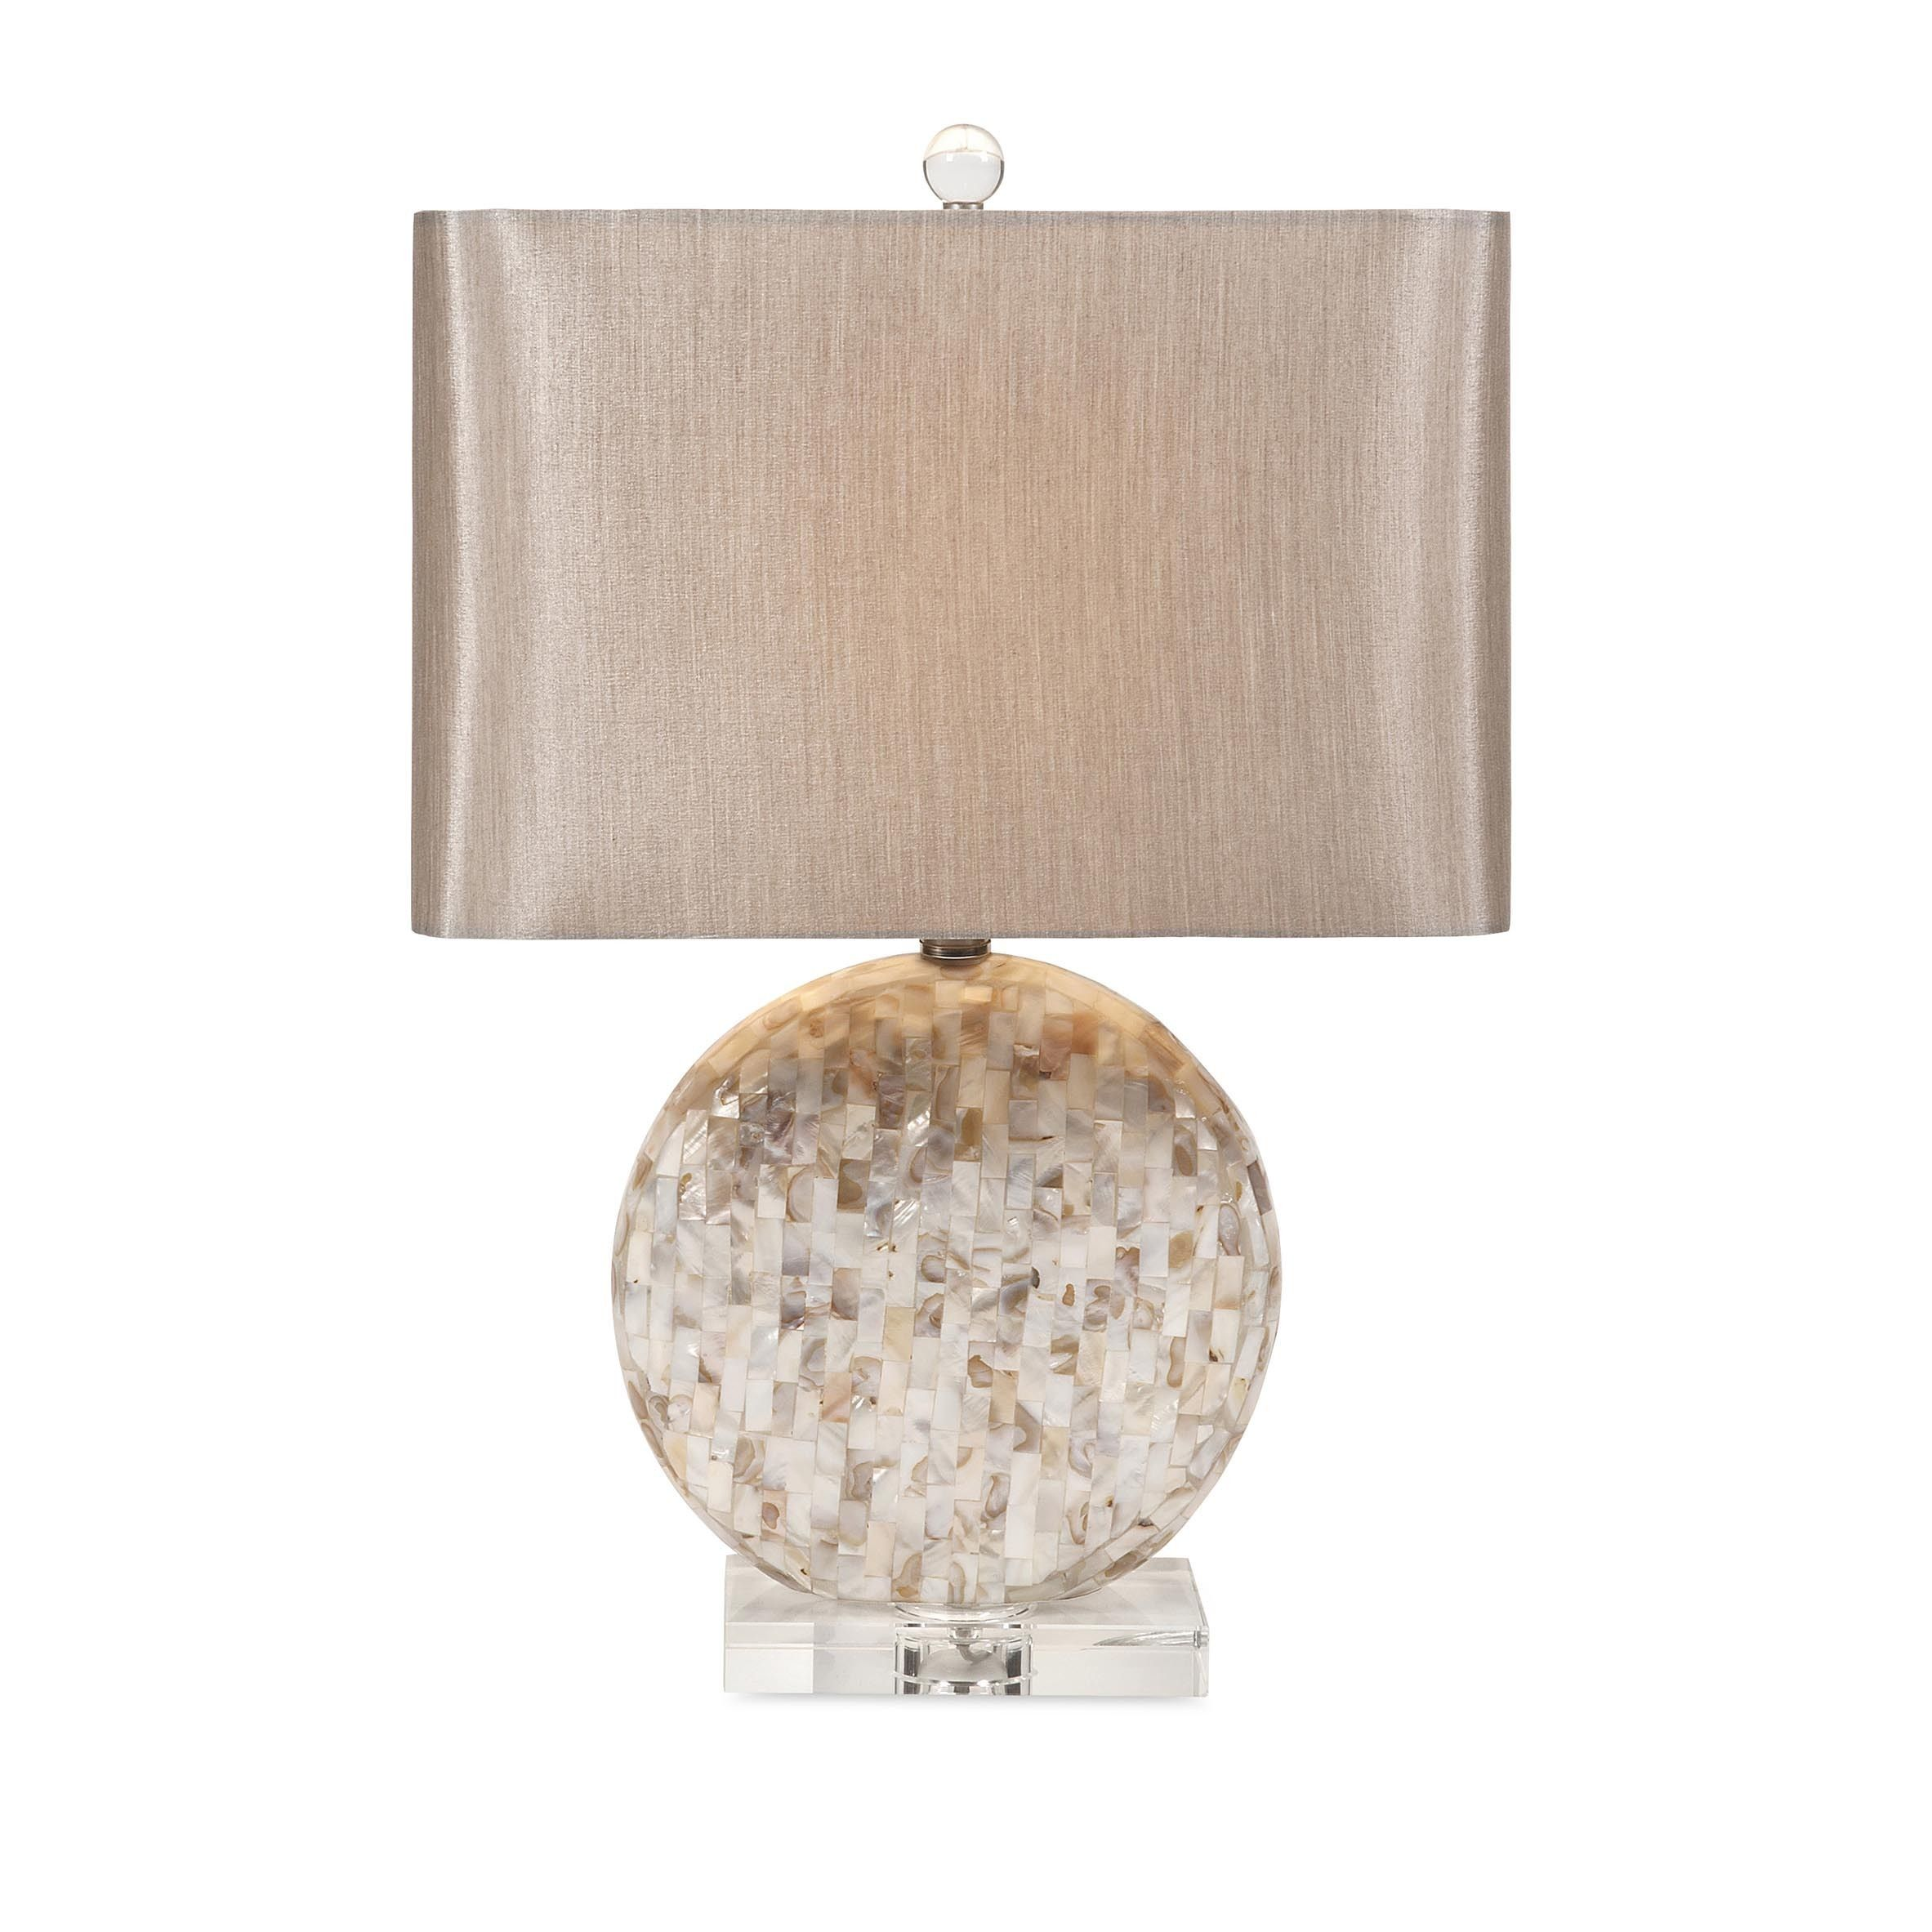 Imax whitney mother of pearl table lamp table lamps brown imax whitney mother of pearl table lamp table lamps brown crystal aloadofball Image collections